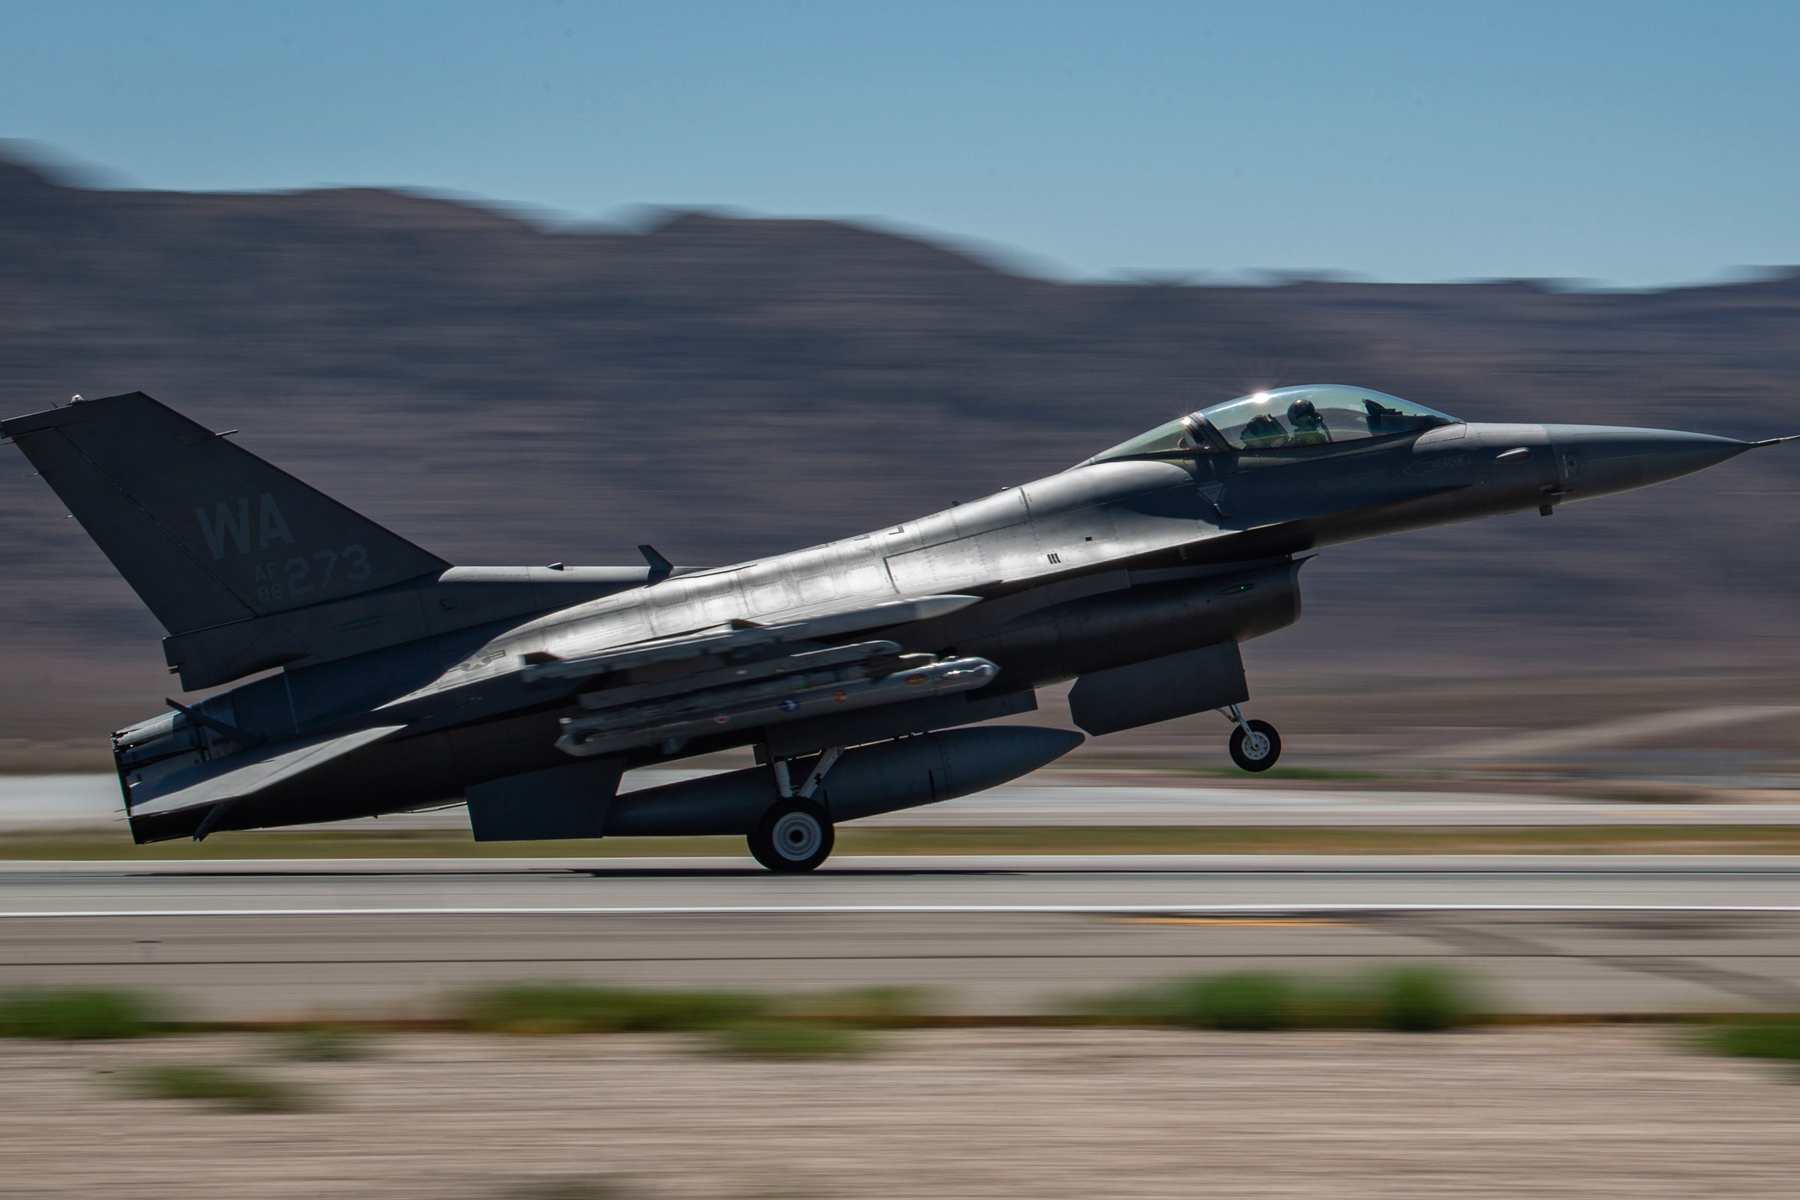 A Working F-16 Fighter Jet Is for Sale in Florida. So, What Can a Buyer Use it For?